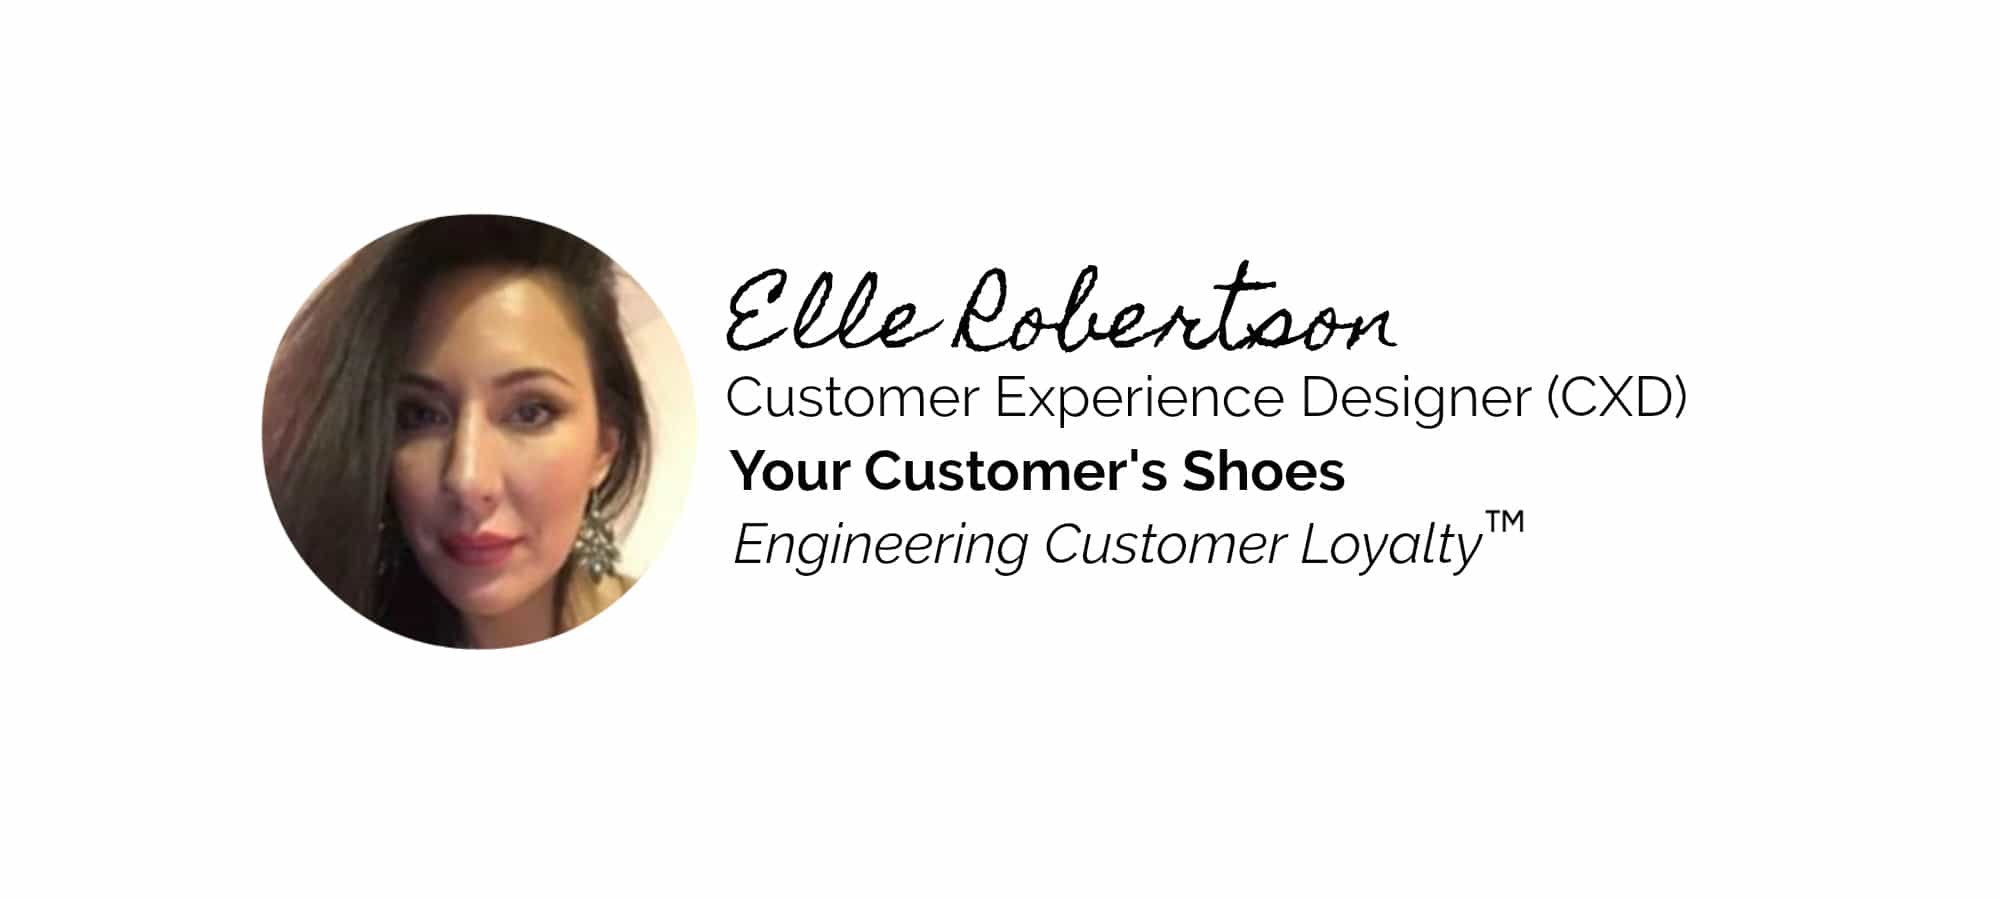 Customer Experience Designer Small Business Your Customers Shoes